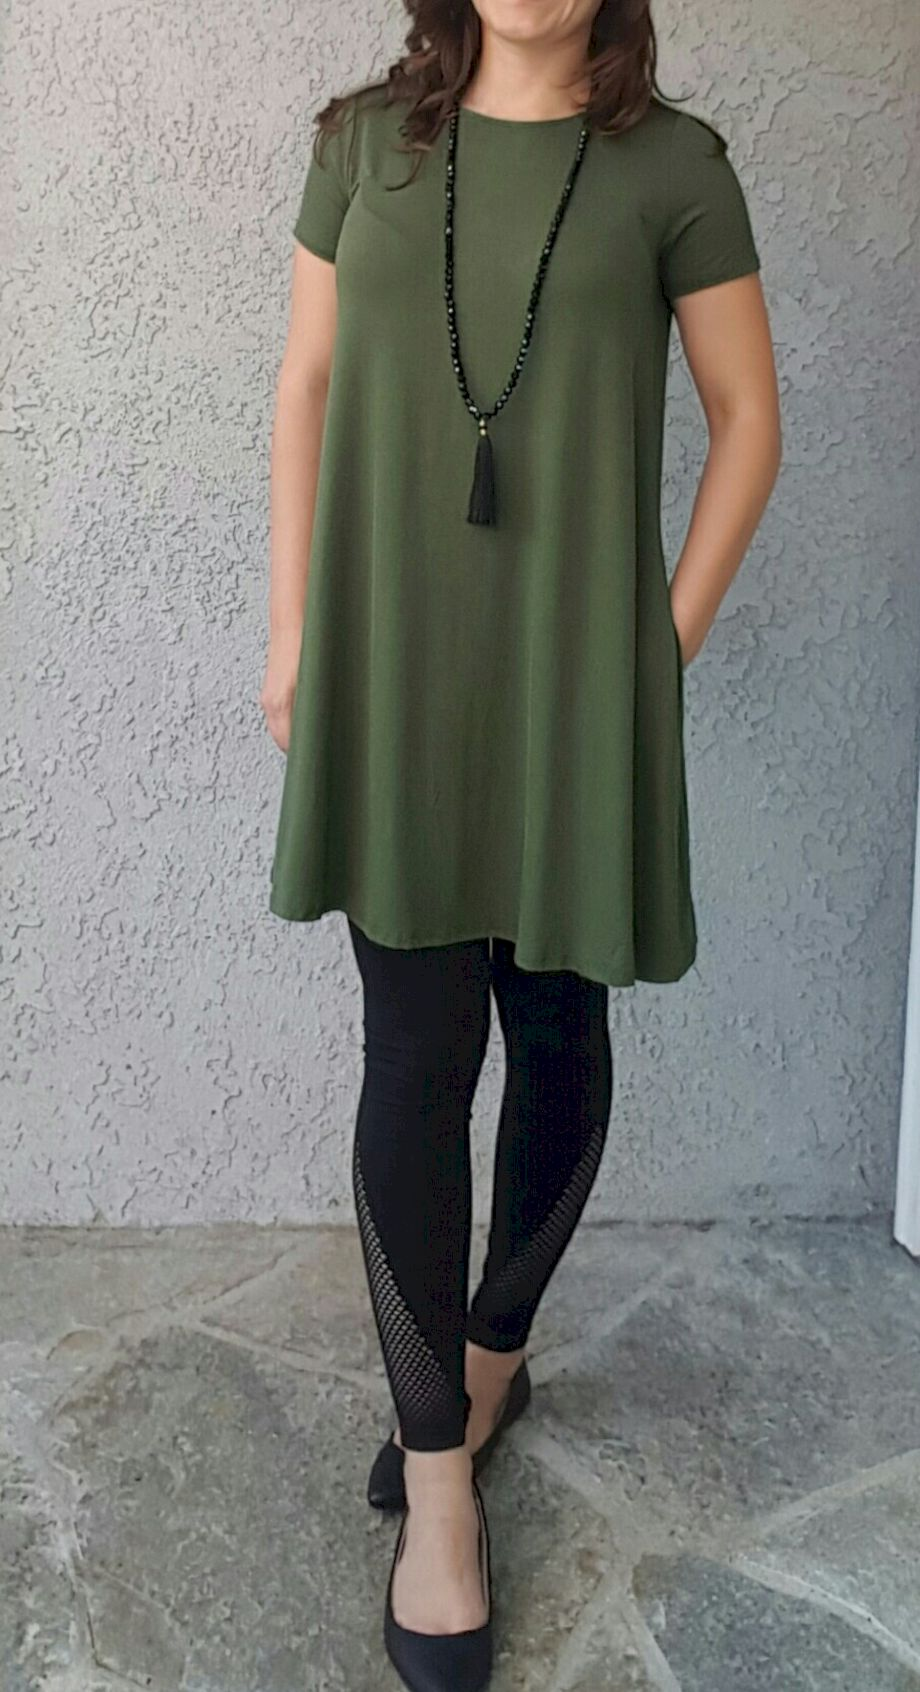 Outfits with leggings 57